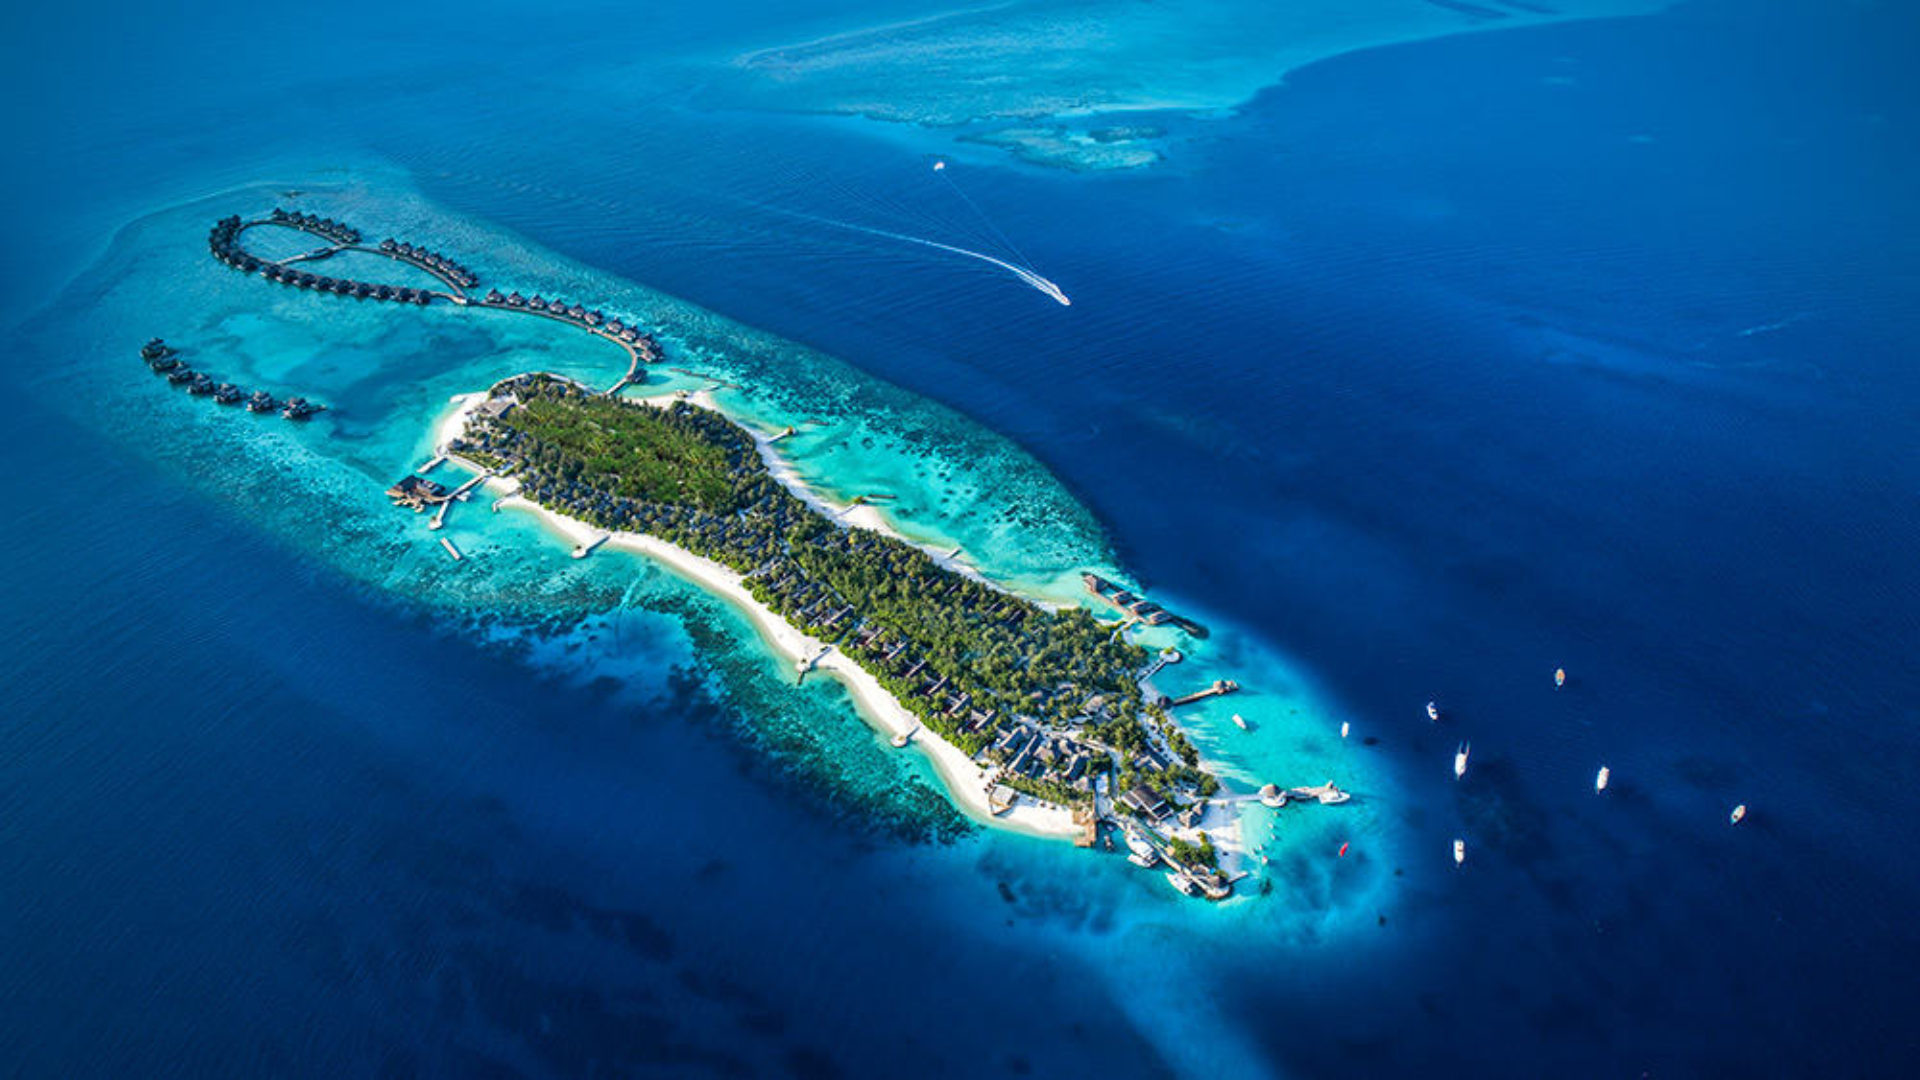 Aerial view of the island and villas at Jumeirah Vittaveli in the Maldives